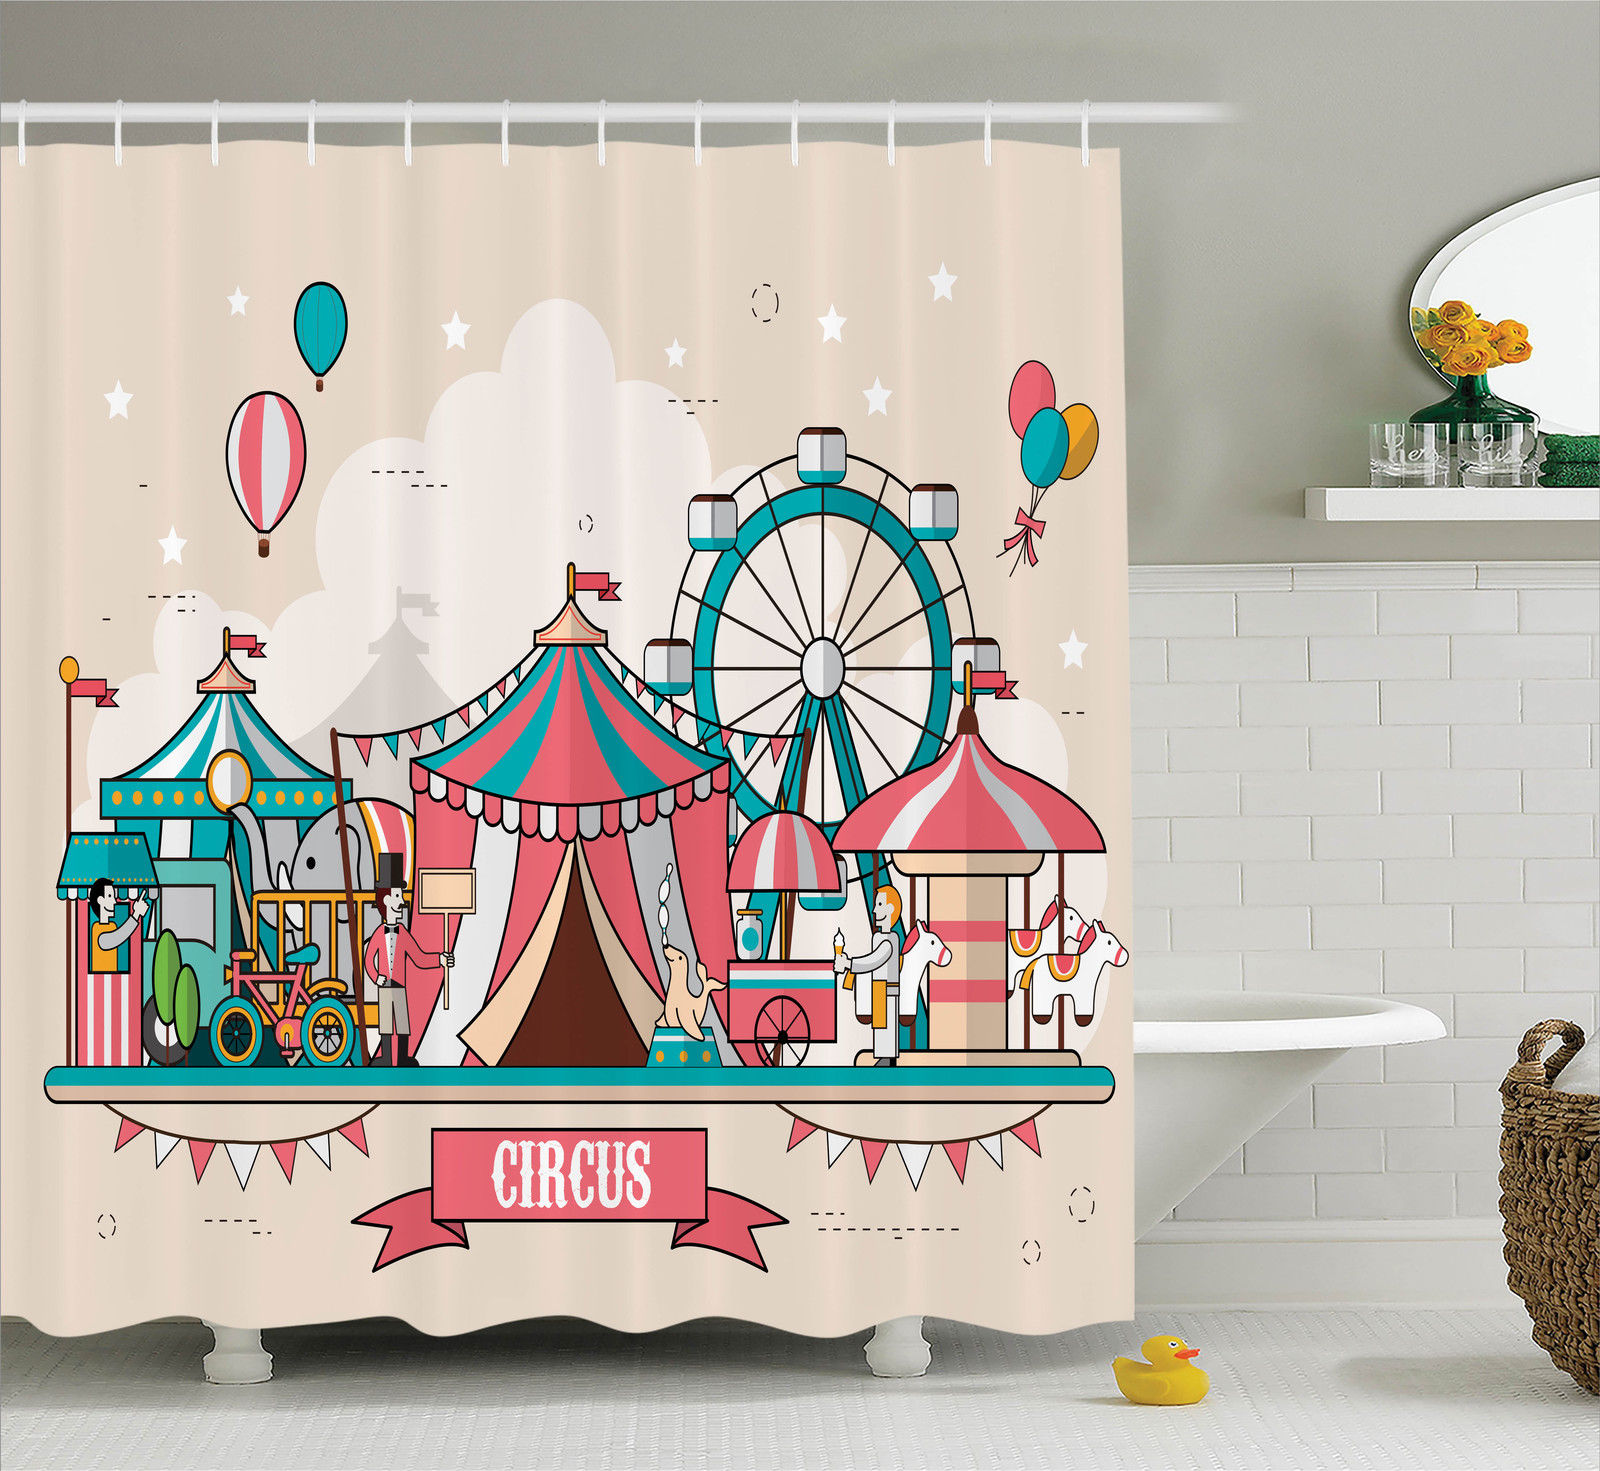 Circus Decor  Circus Facilities Scenery In Flat Design Style Balloons Children At Park Illustration, Bathroom Accessories, 69W X 70L Inches, By Ambesonne